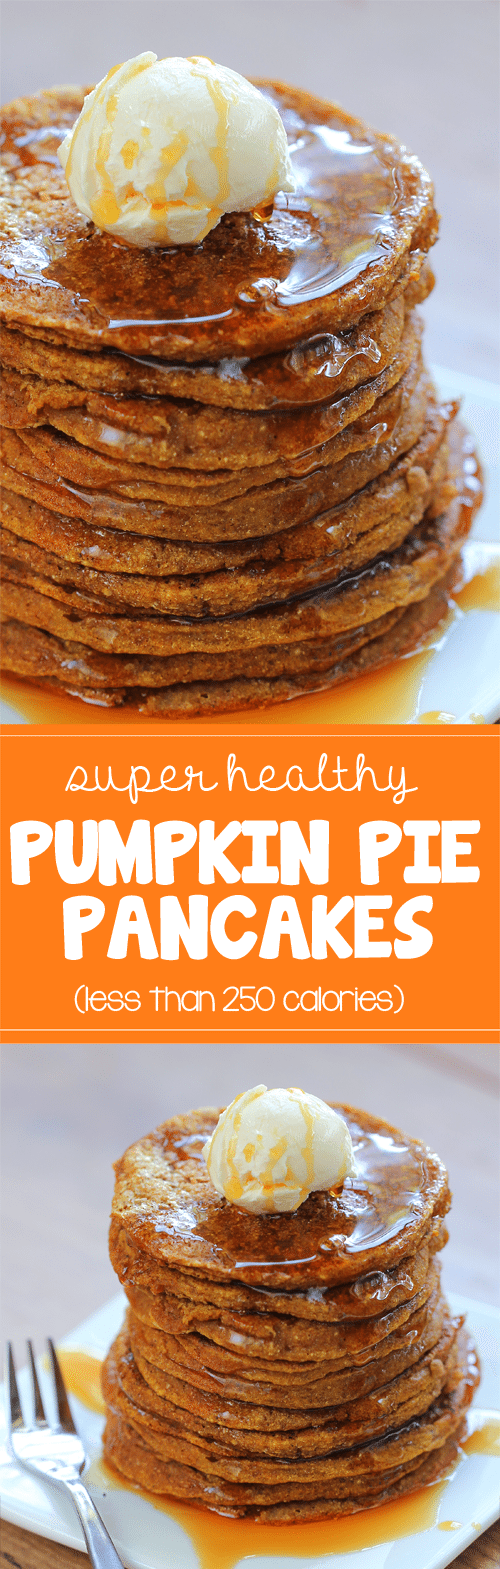 Super light & fluffy pumpkin pancakes from @choccoveredkt... for less than 250 calories. Full recipe: http://chocolatecoveredkatie.com/2013/11/17/pumpkin-pancakes/